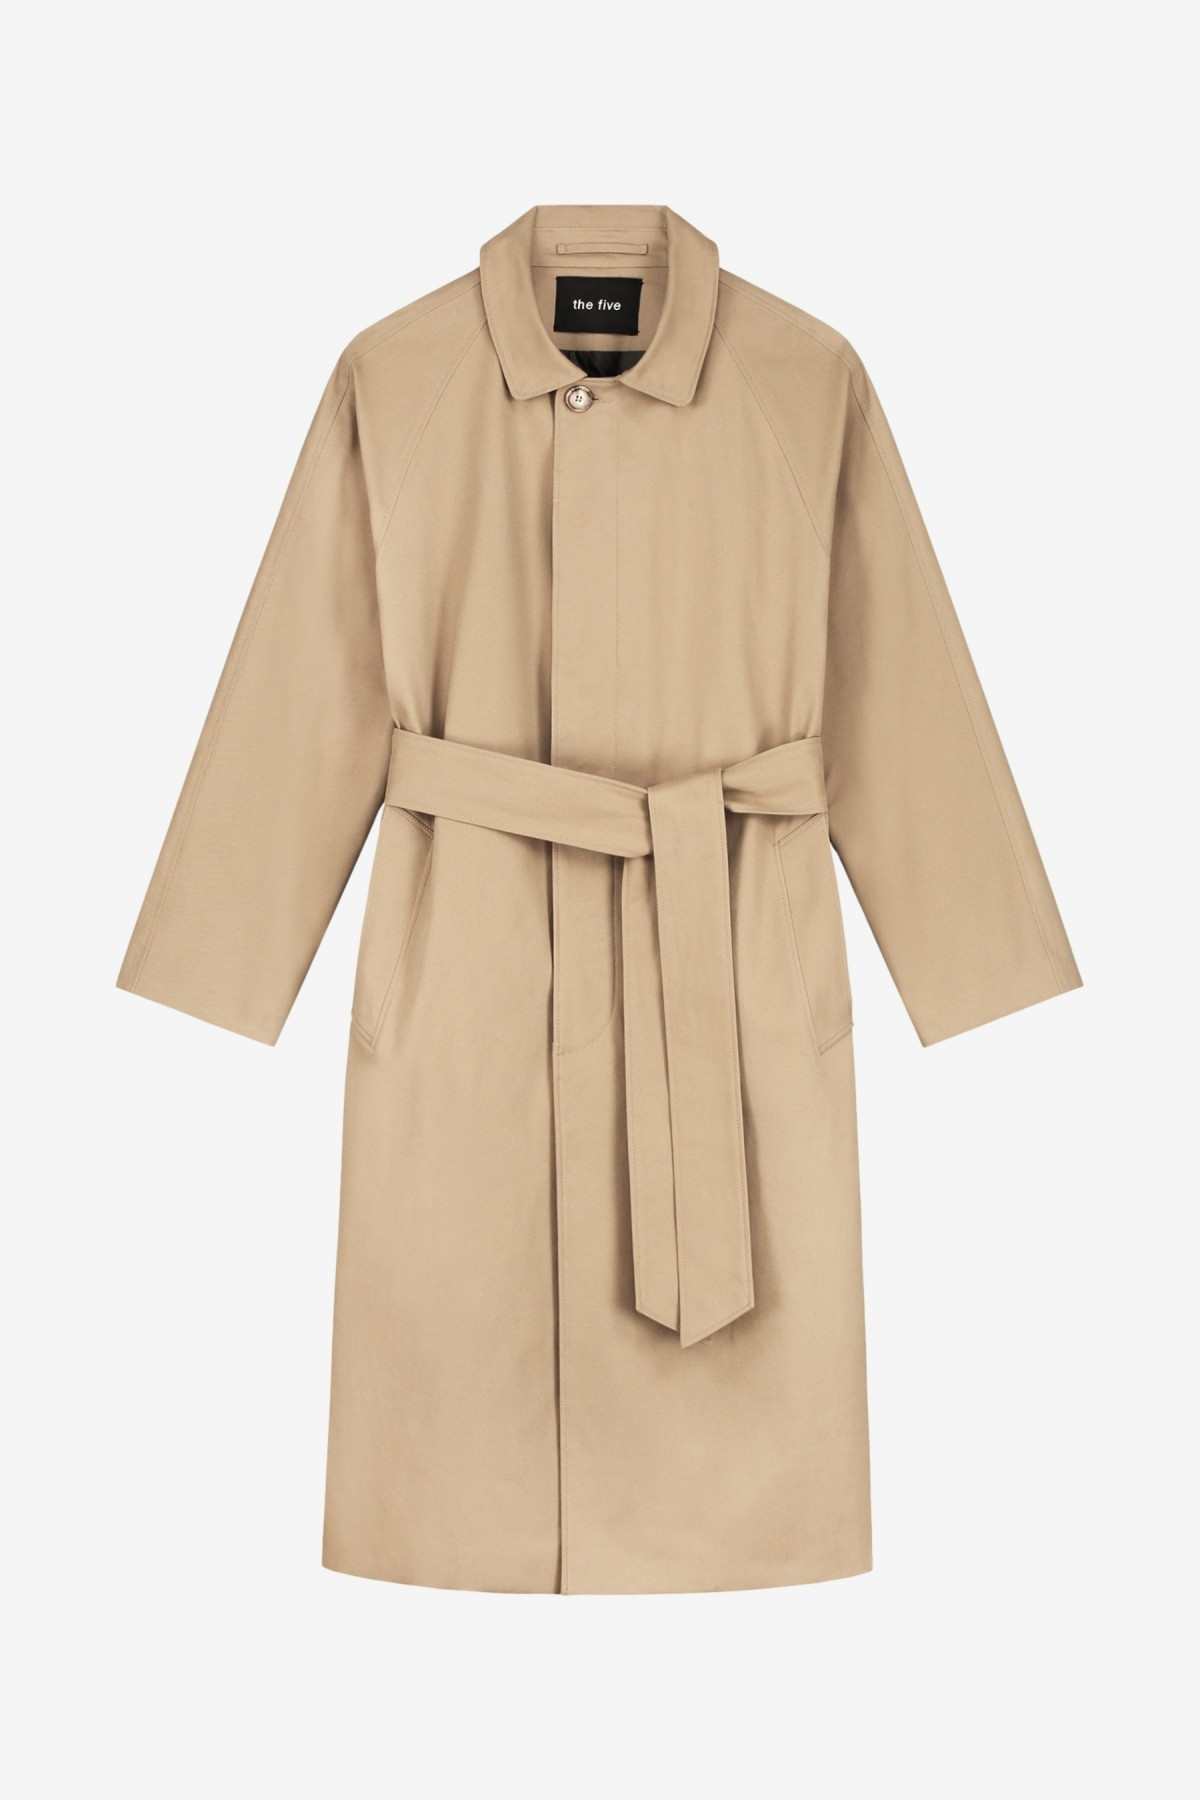 The Five Studio The Trench in Caramel